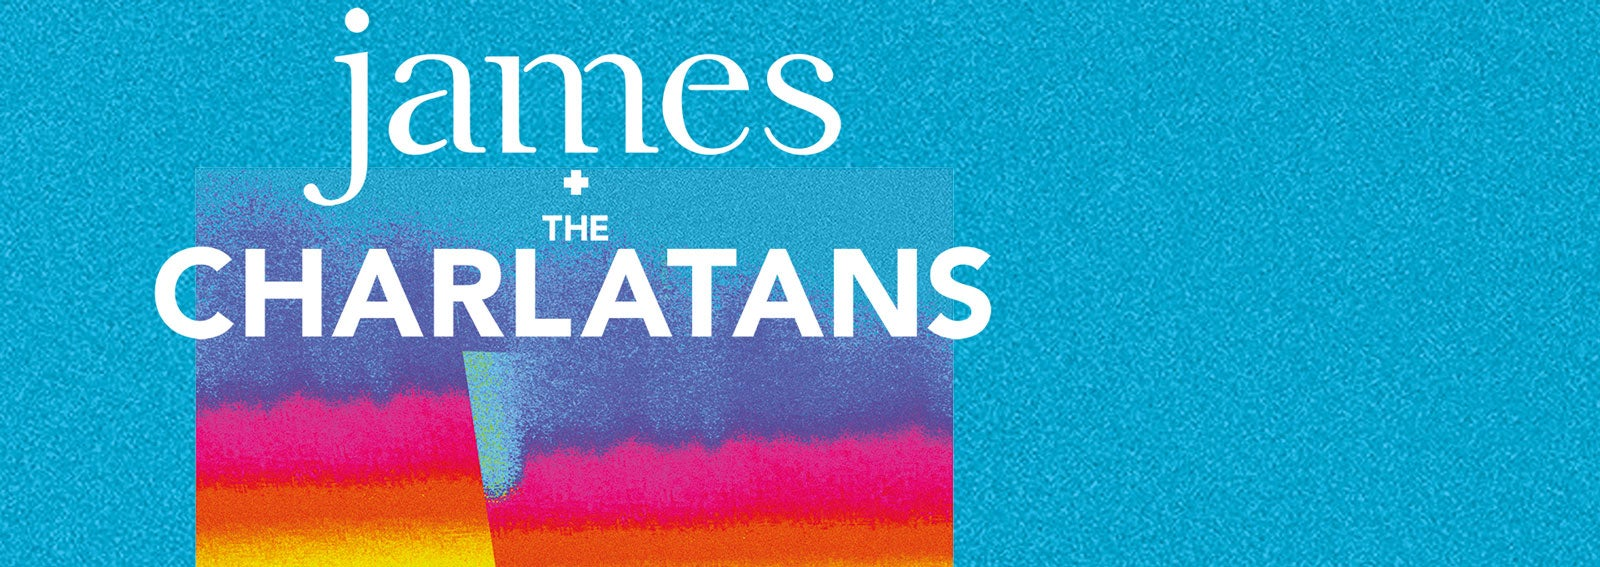 James & The Charlatans | Events | Glasgow | The SSE Hydro